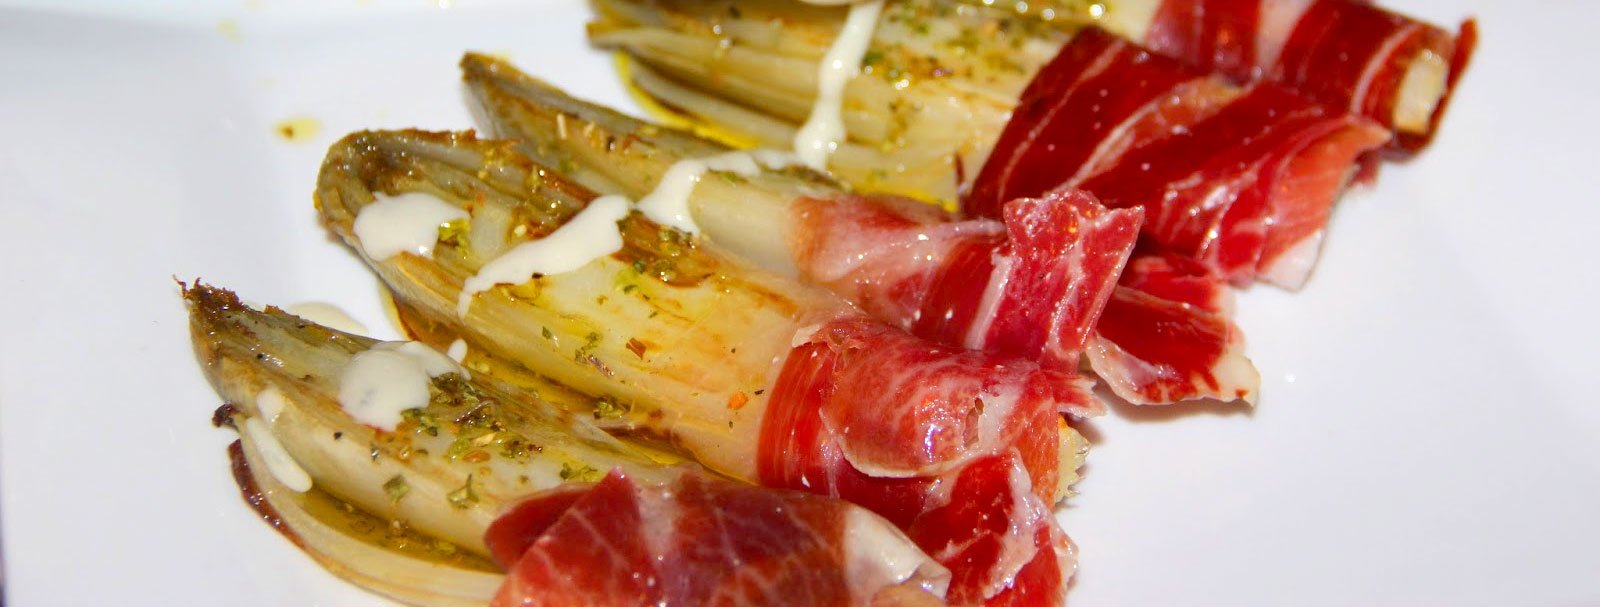 Endives with Ibérico Ham & Cream Cheese